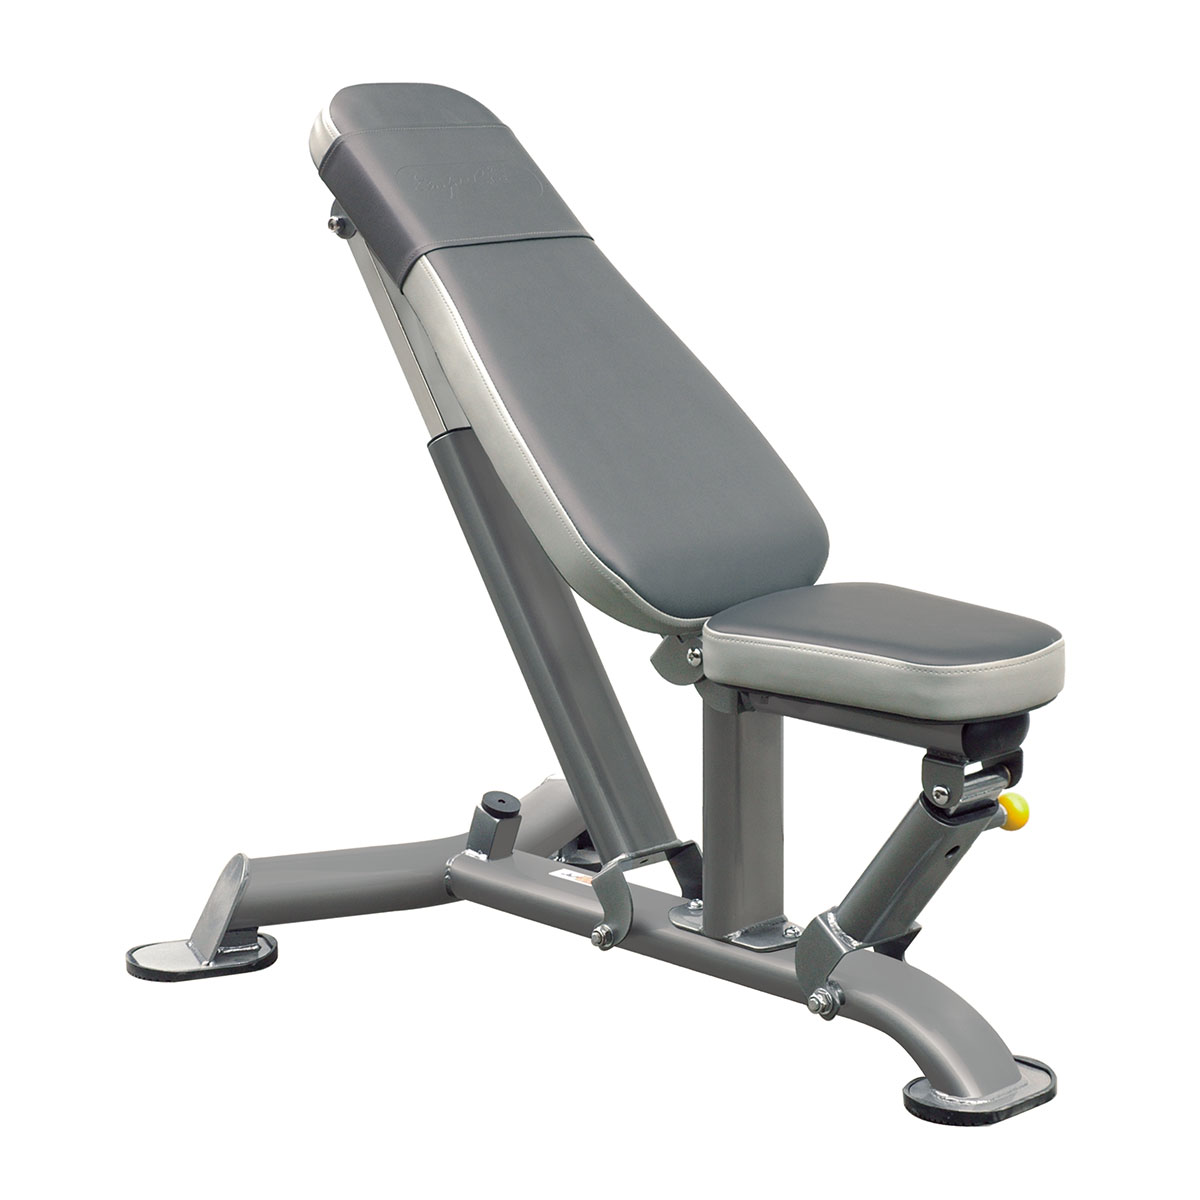 Mult Adjustable bench - Impulse Wellness